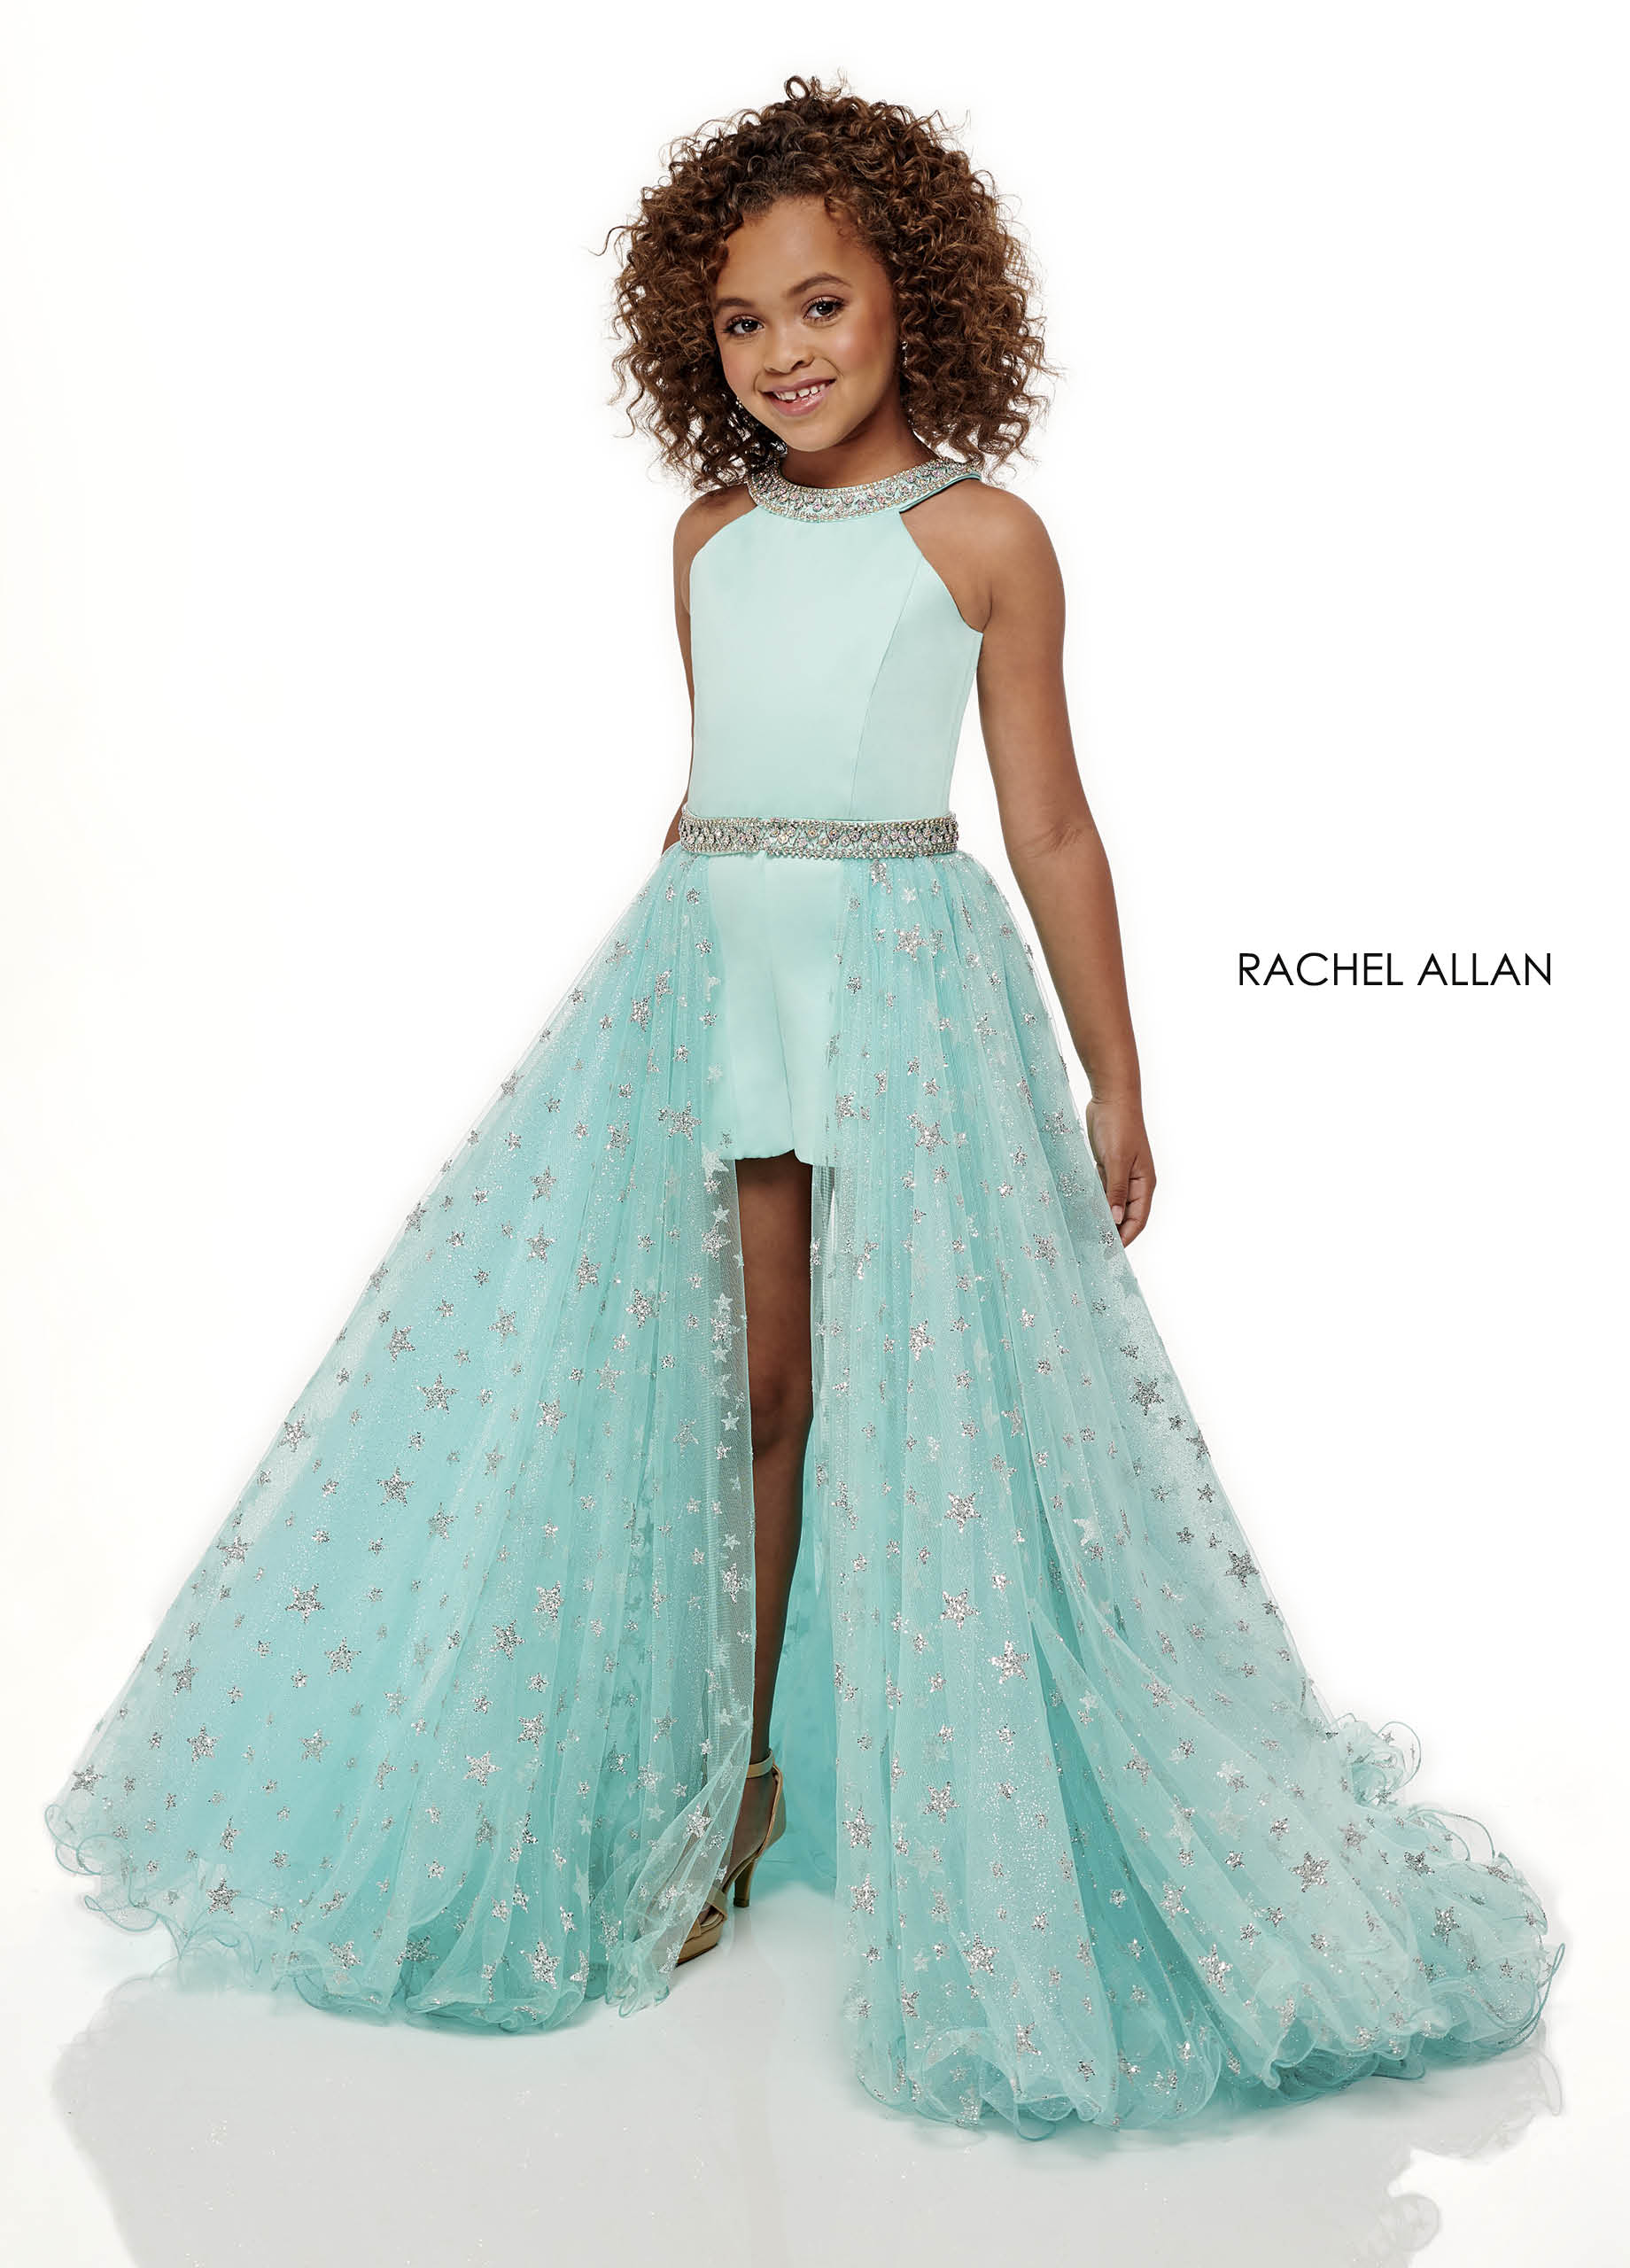 Beaded Shorts With Overlay Little Girl Pageant Dresses in Aqua Color